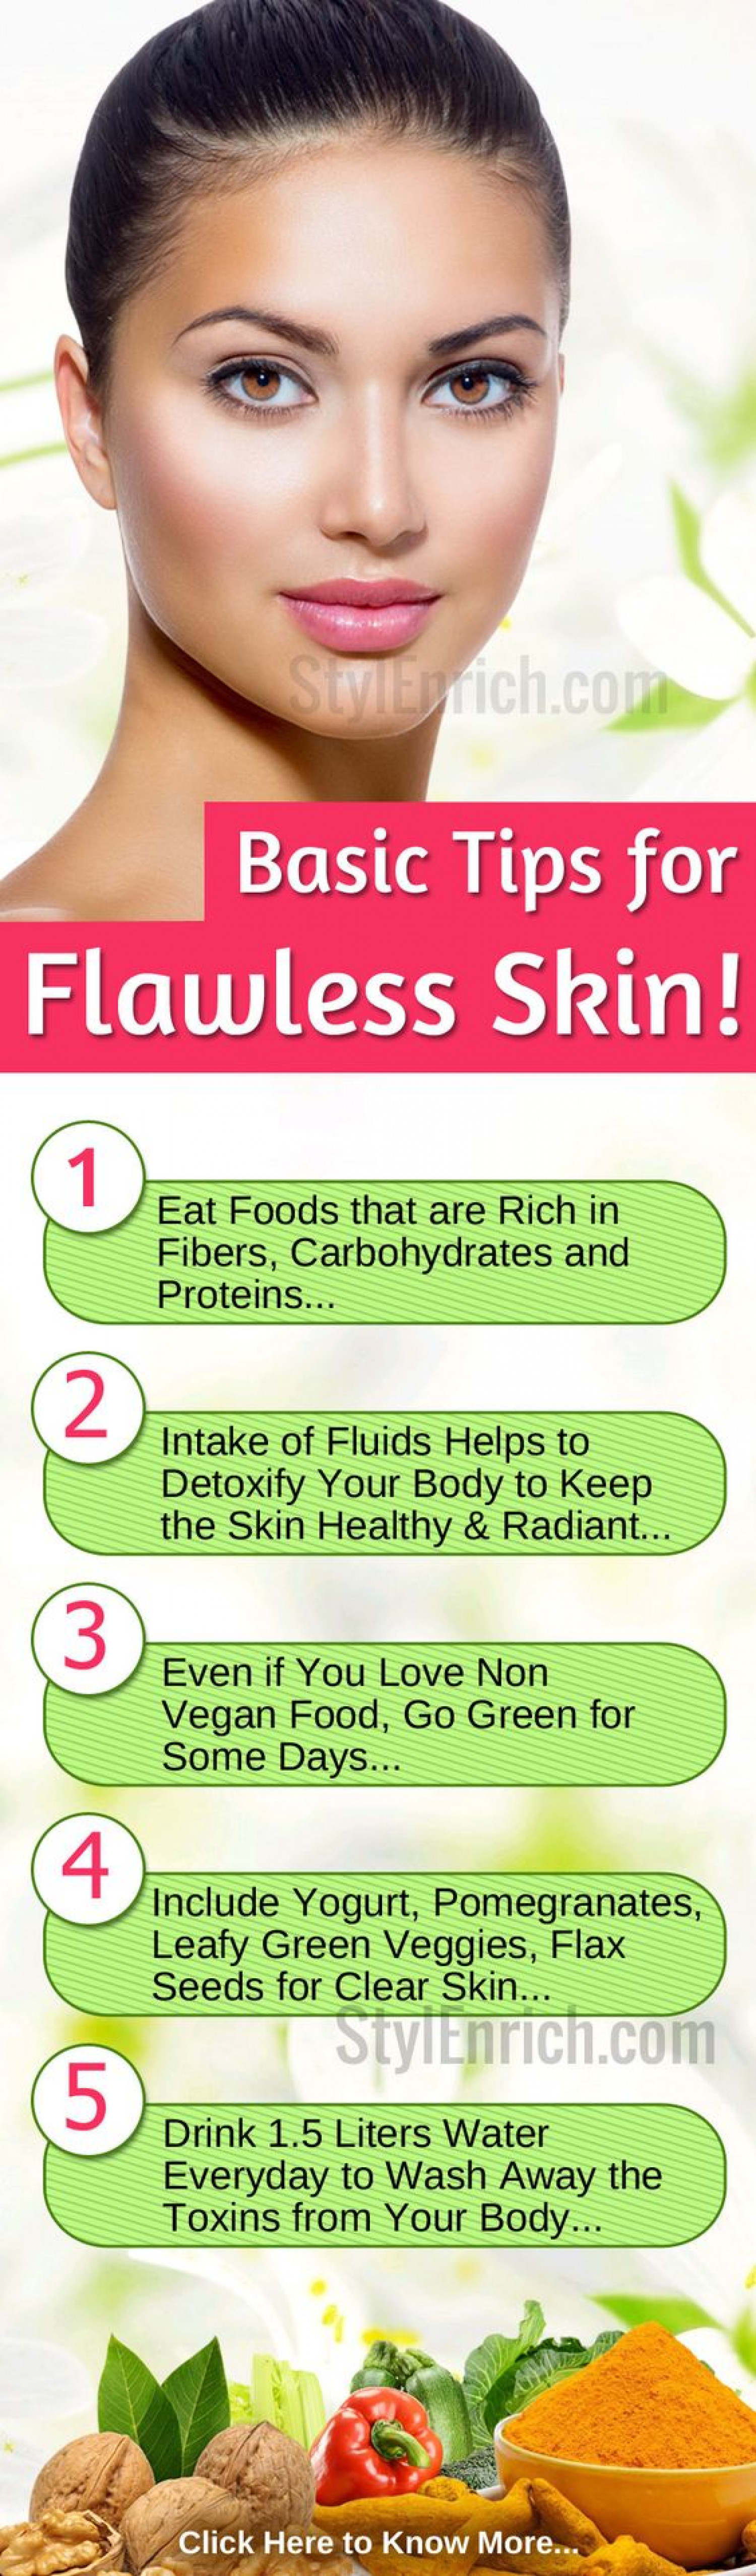 Basic Tips for Flawless Skin  Visual.ly